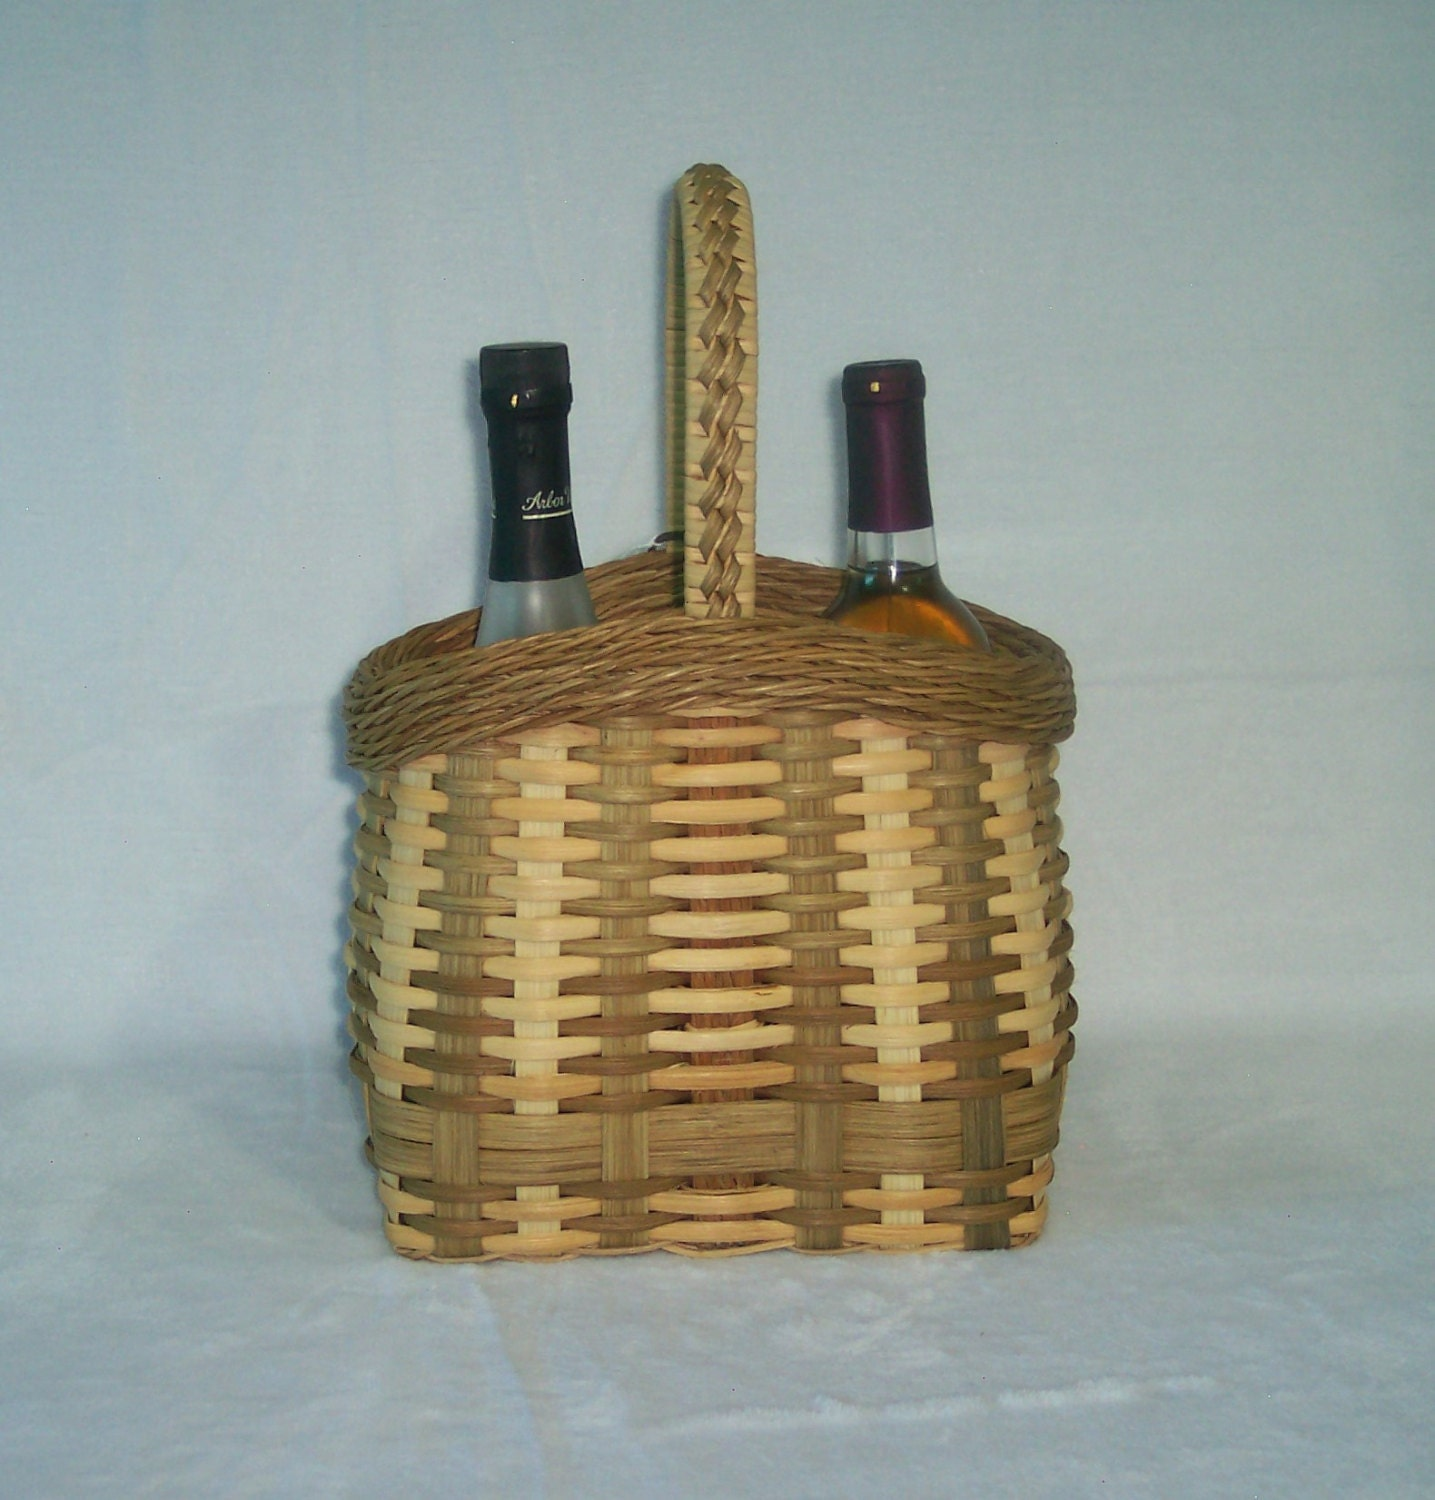 Basket Weaving Supplies And Kits : Basket weaving kit cottage wine